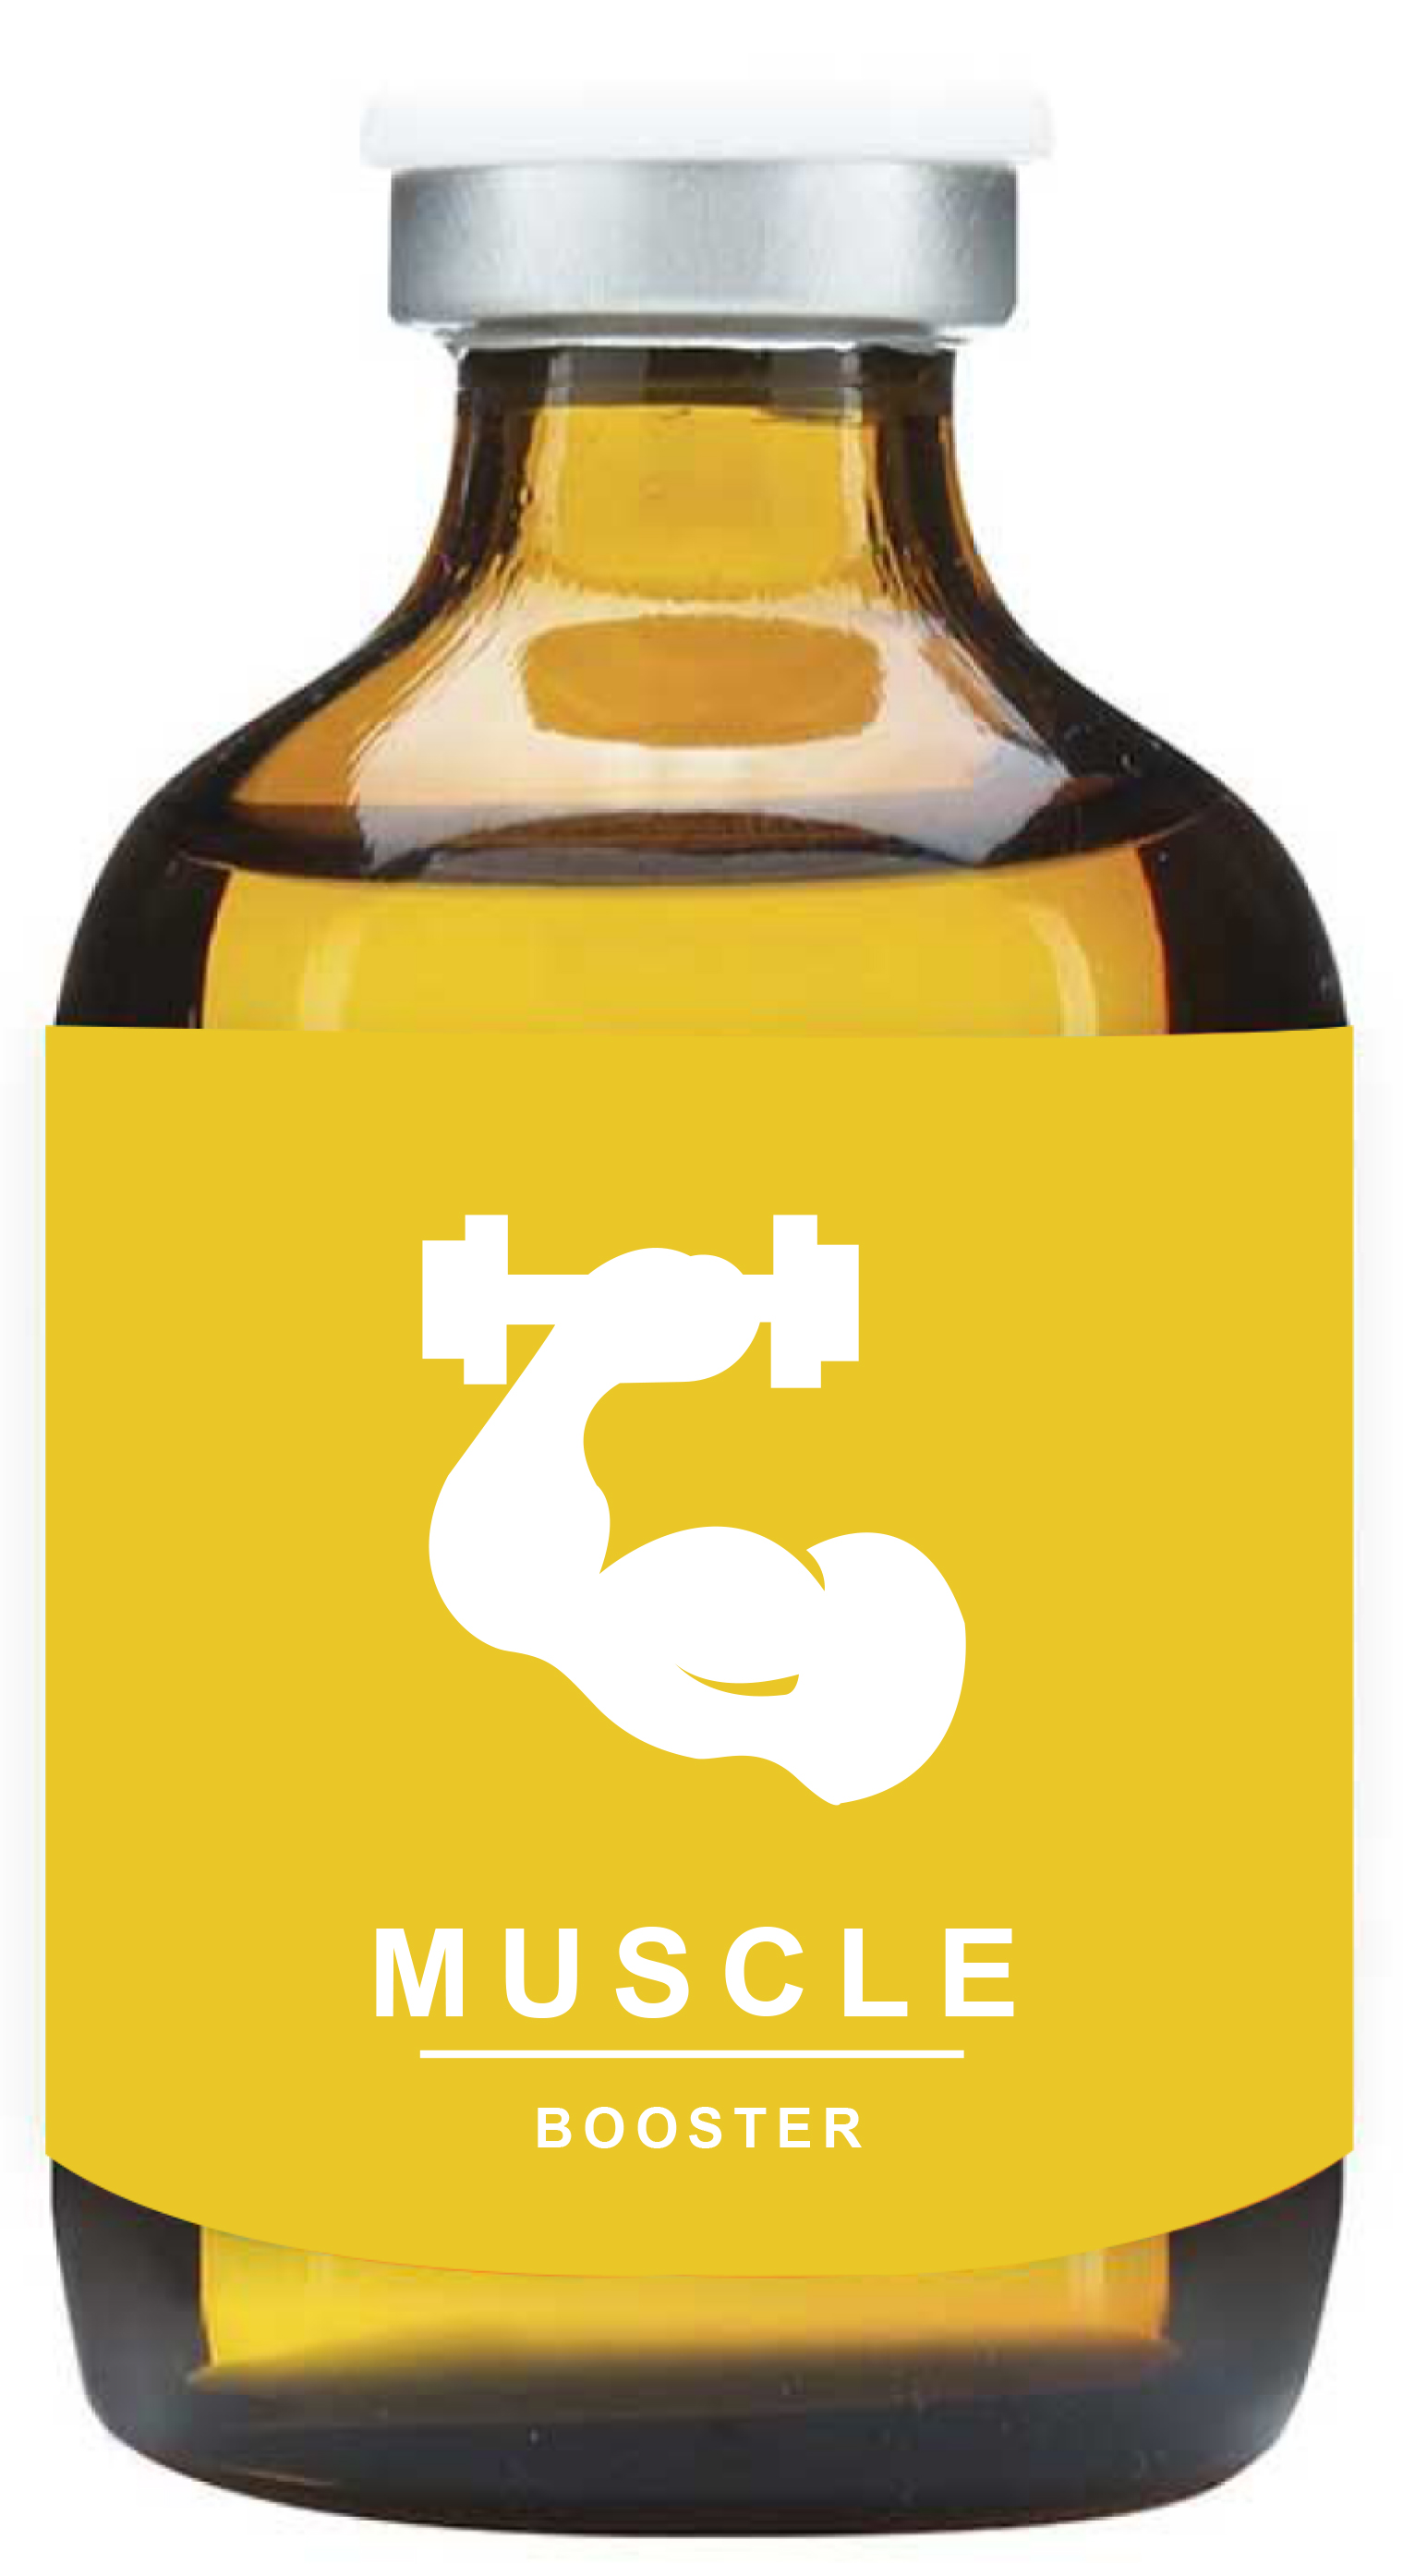 Muscle Booster.jpg